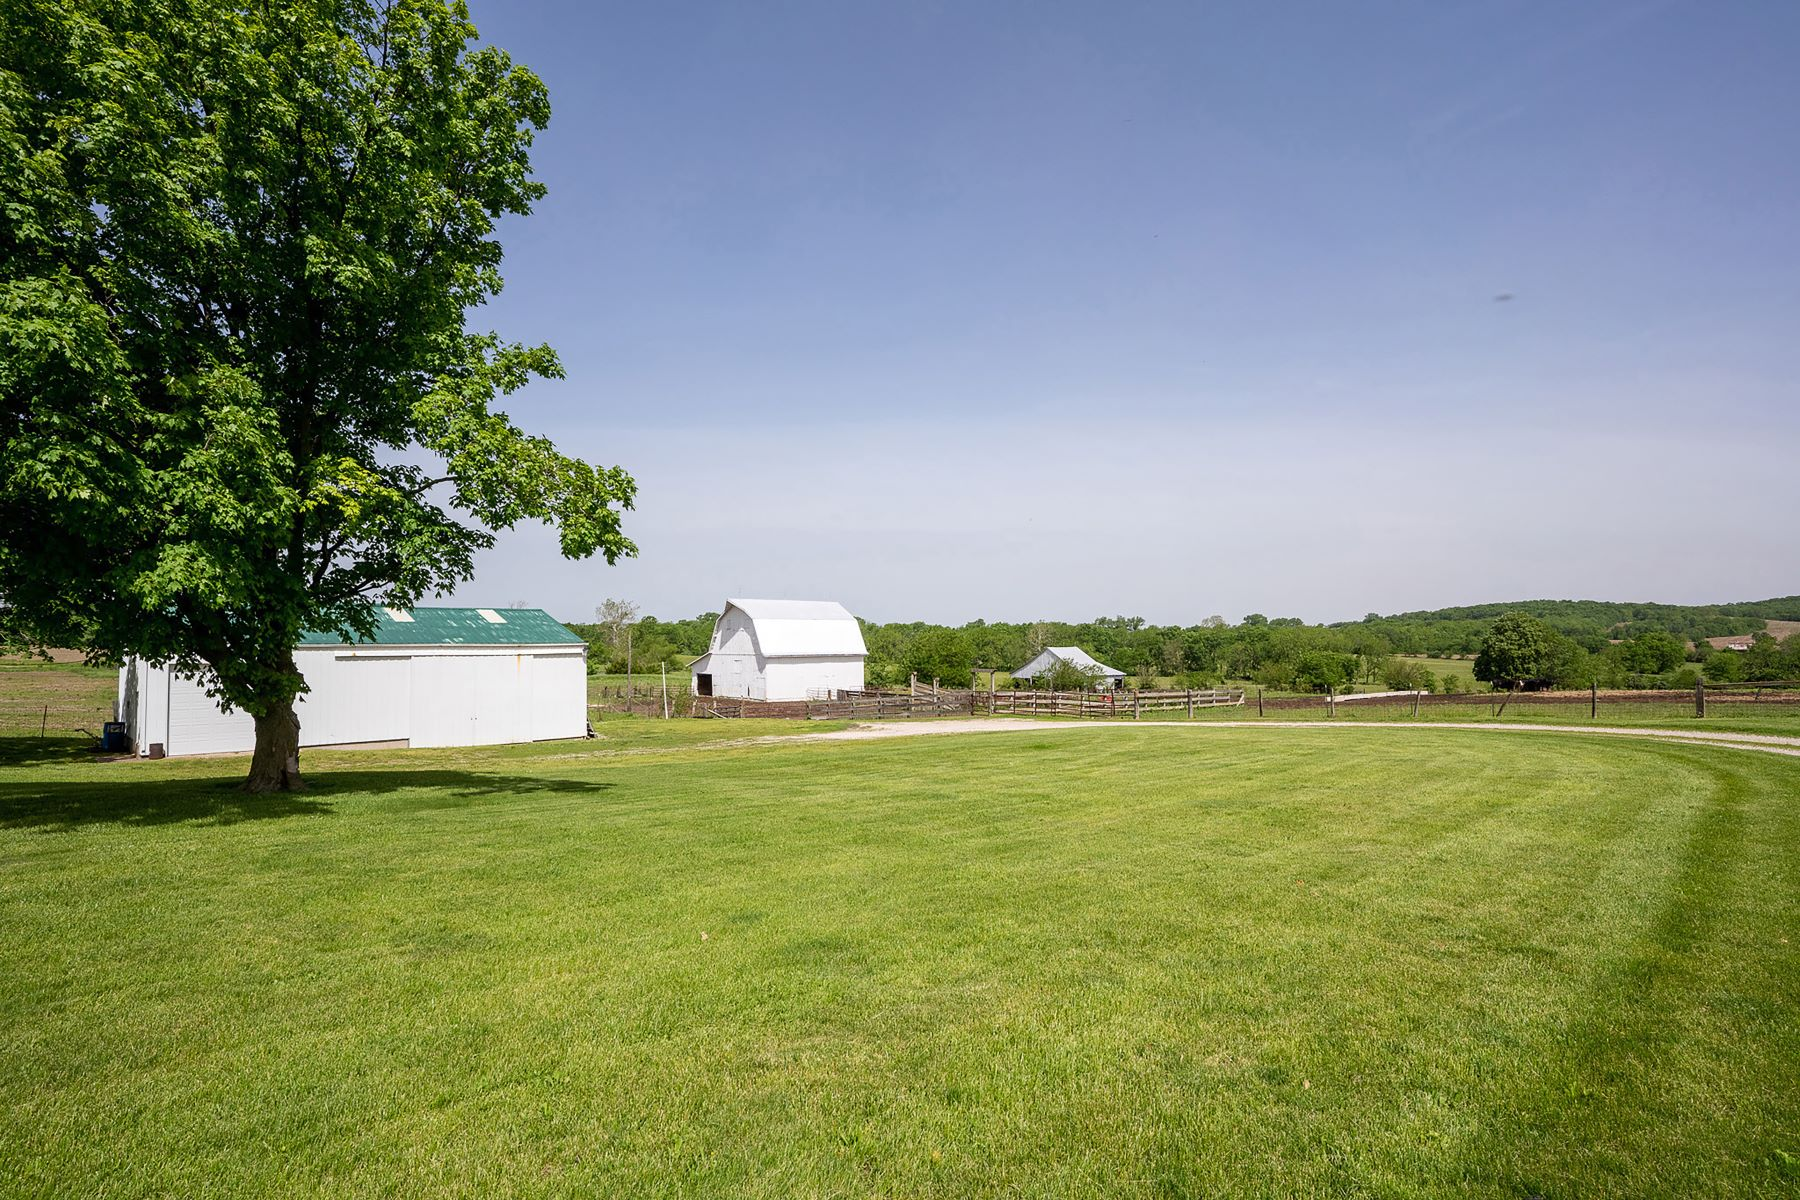 Additional photo for property listing at Iconic 1920s Home on Scenic Property 1995 Highway B Elsberry, Missouri 63343 United States